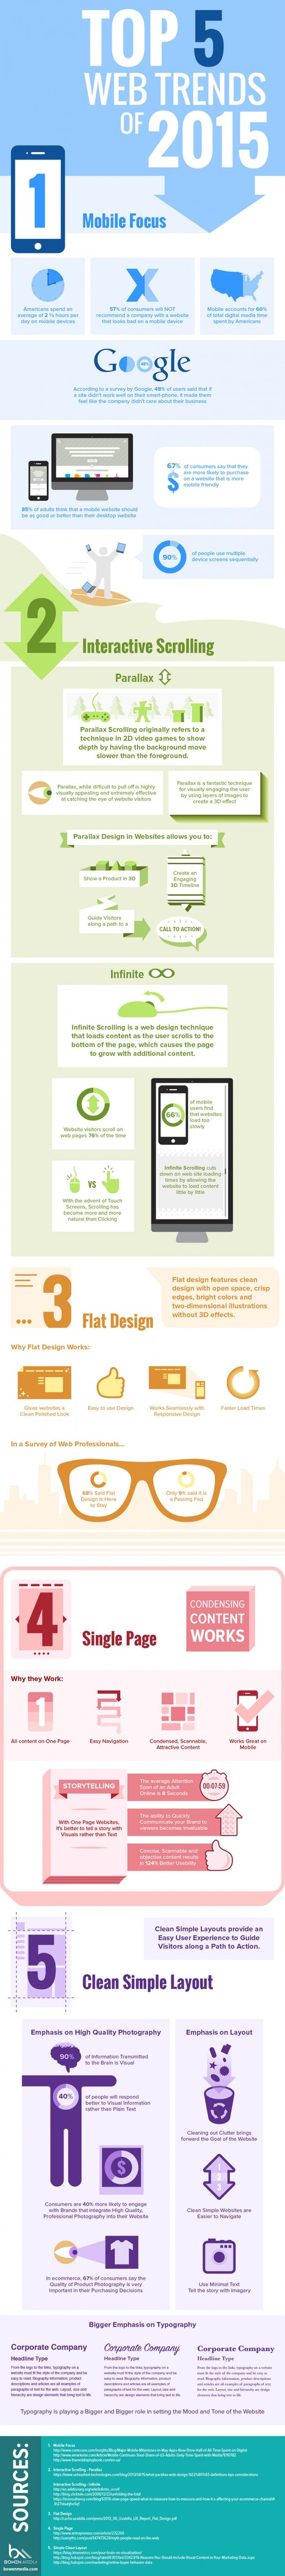 Top 5 Web Design Trends For 2015 | Infographic | Aspiring Outliers | Scoop.it